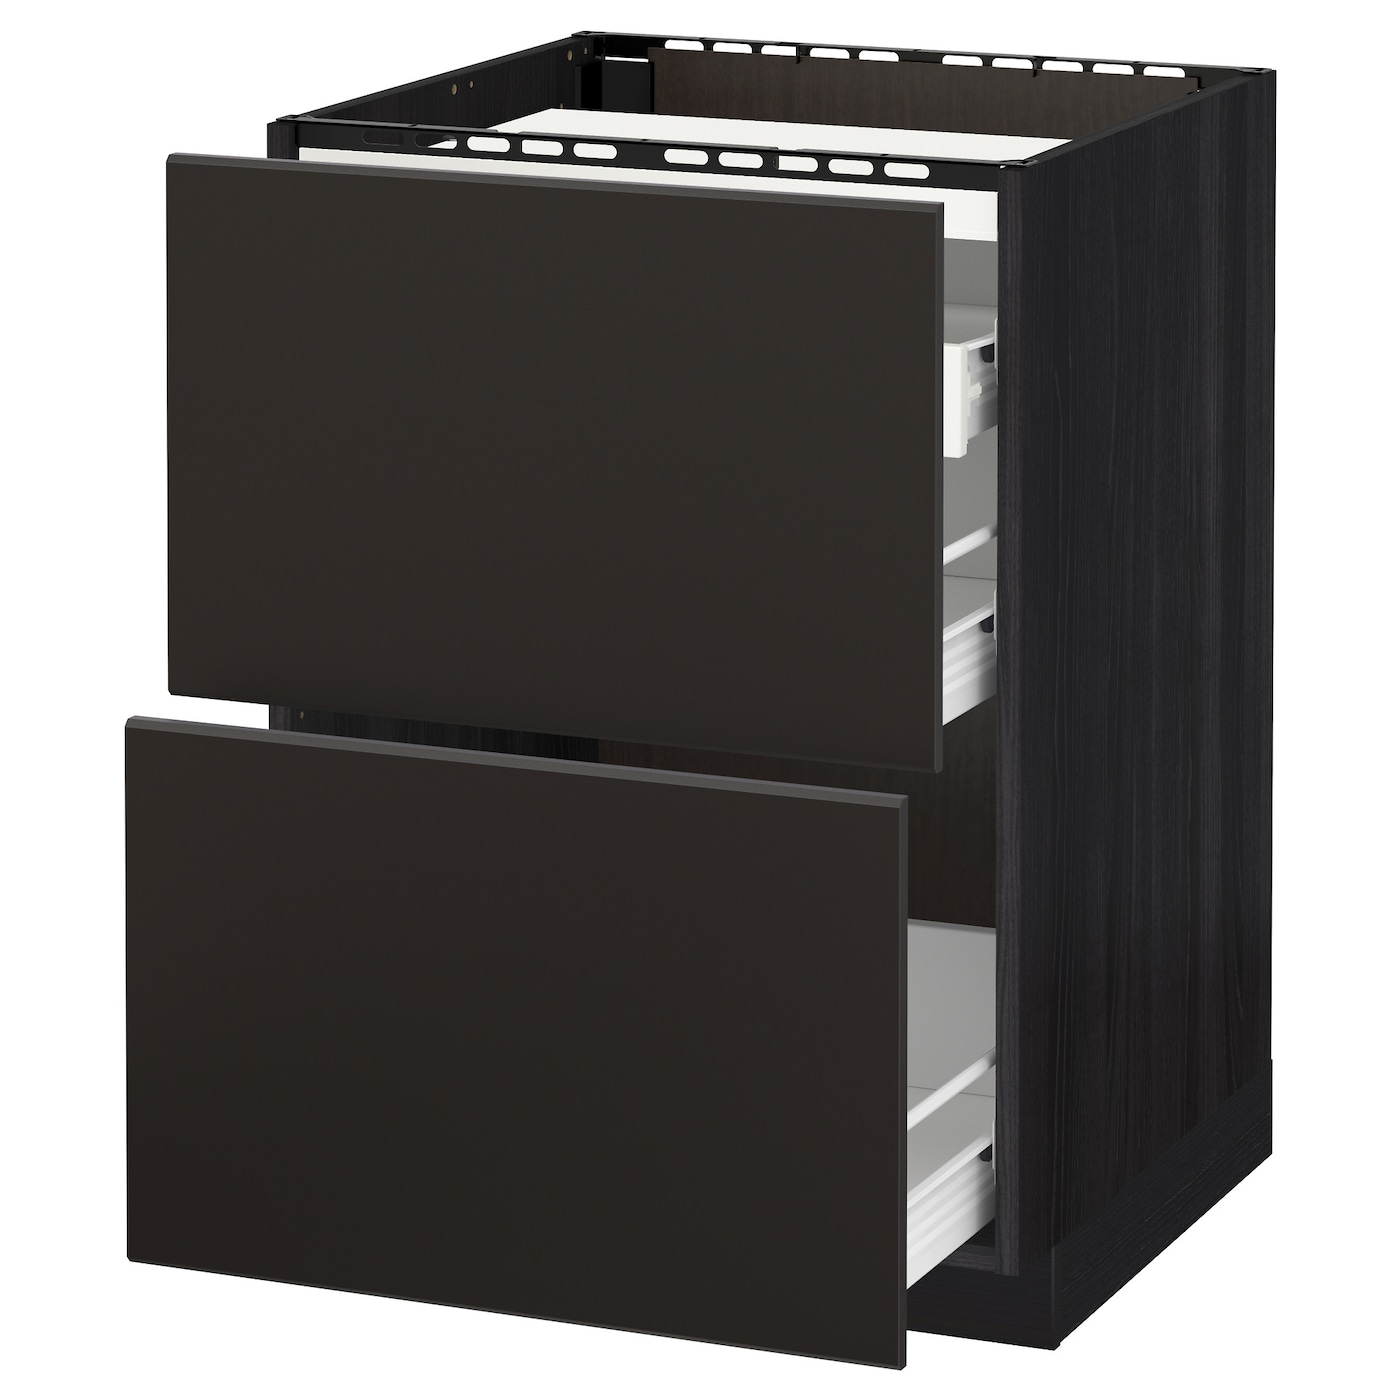 IKEA METOD/FÖRVARA base cab f hob/2 fronts/3 drawers Sturdy frame construction, 18 mm thick.